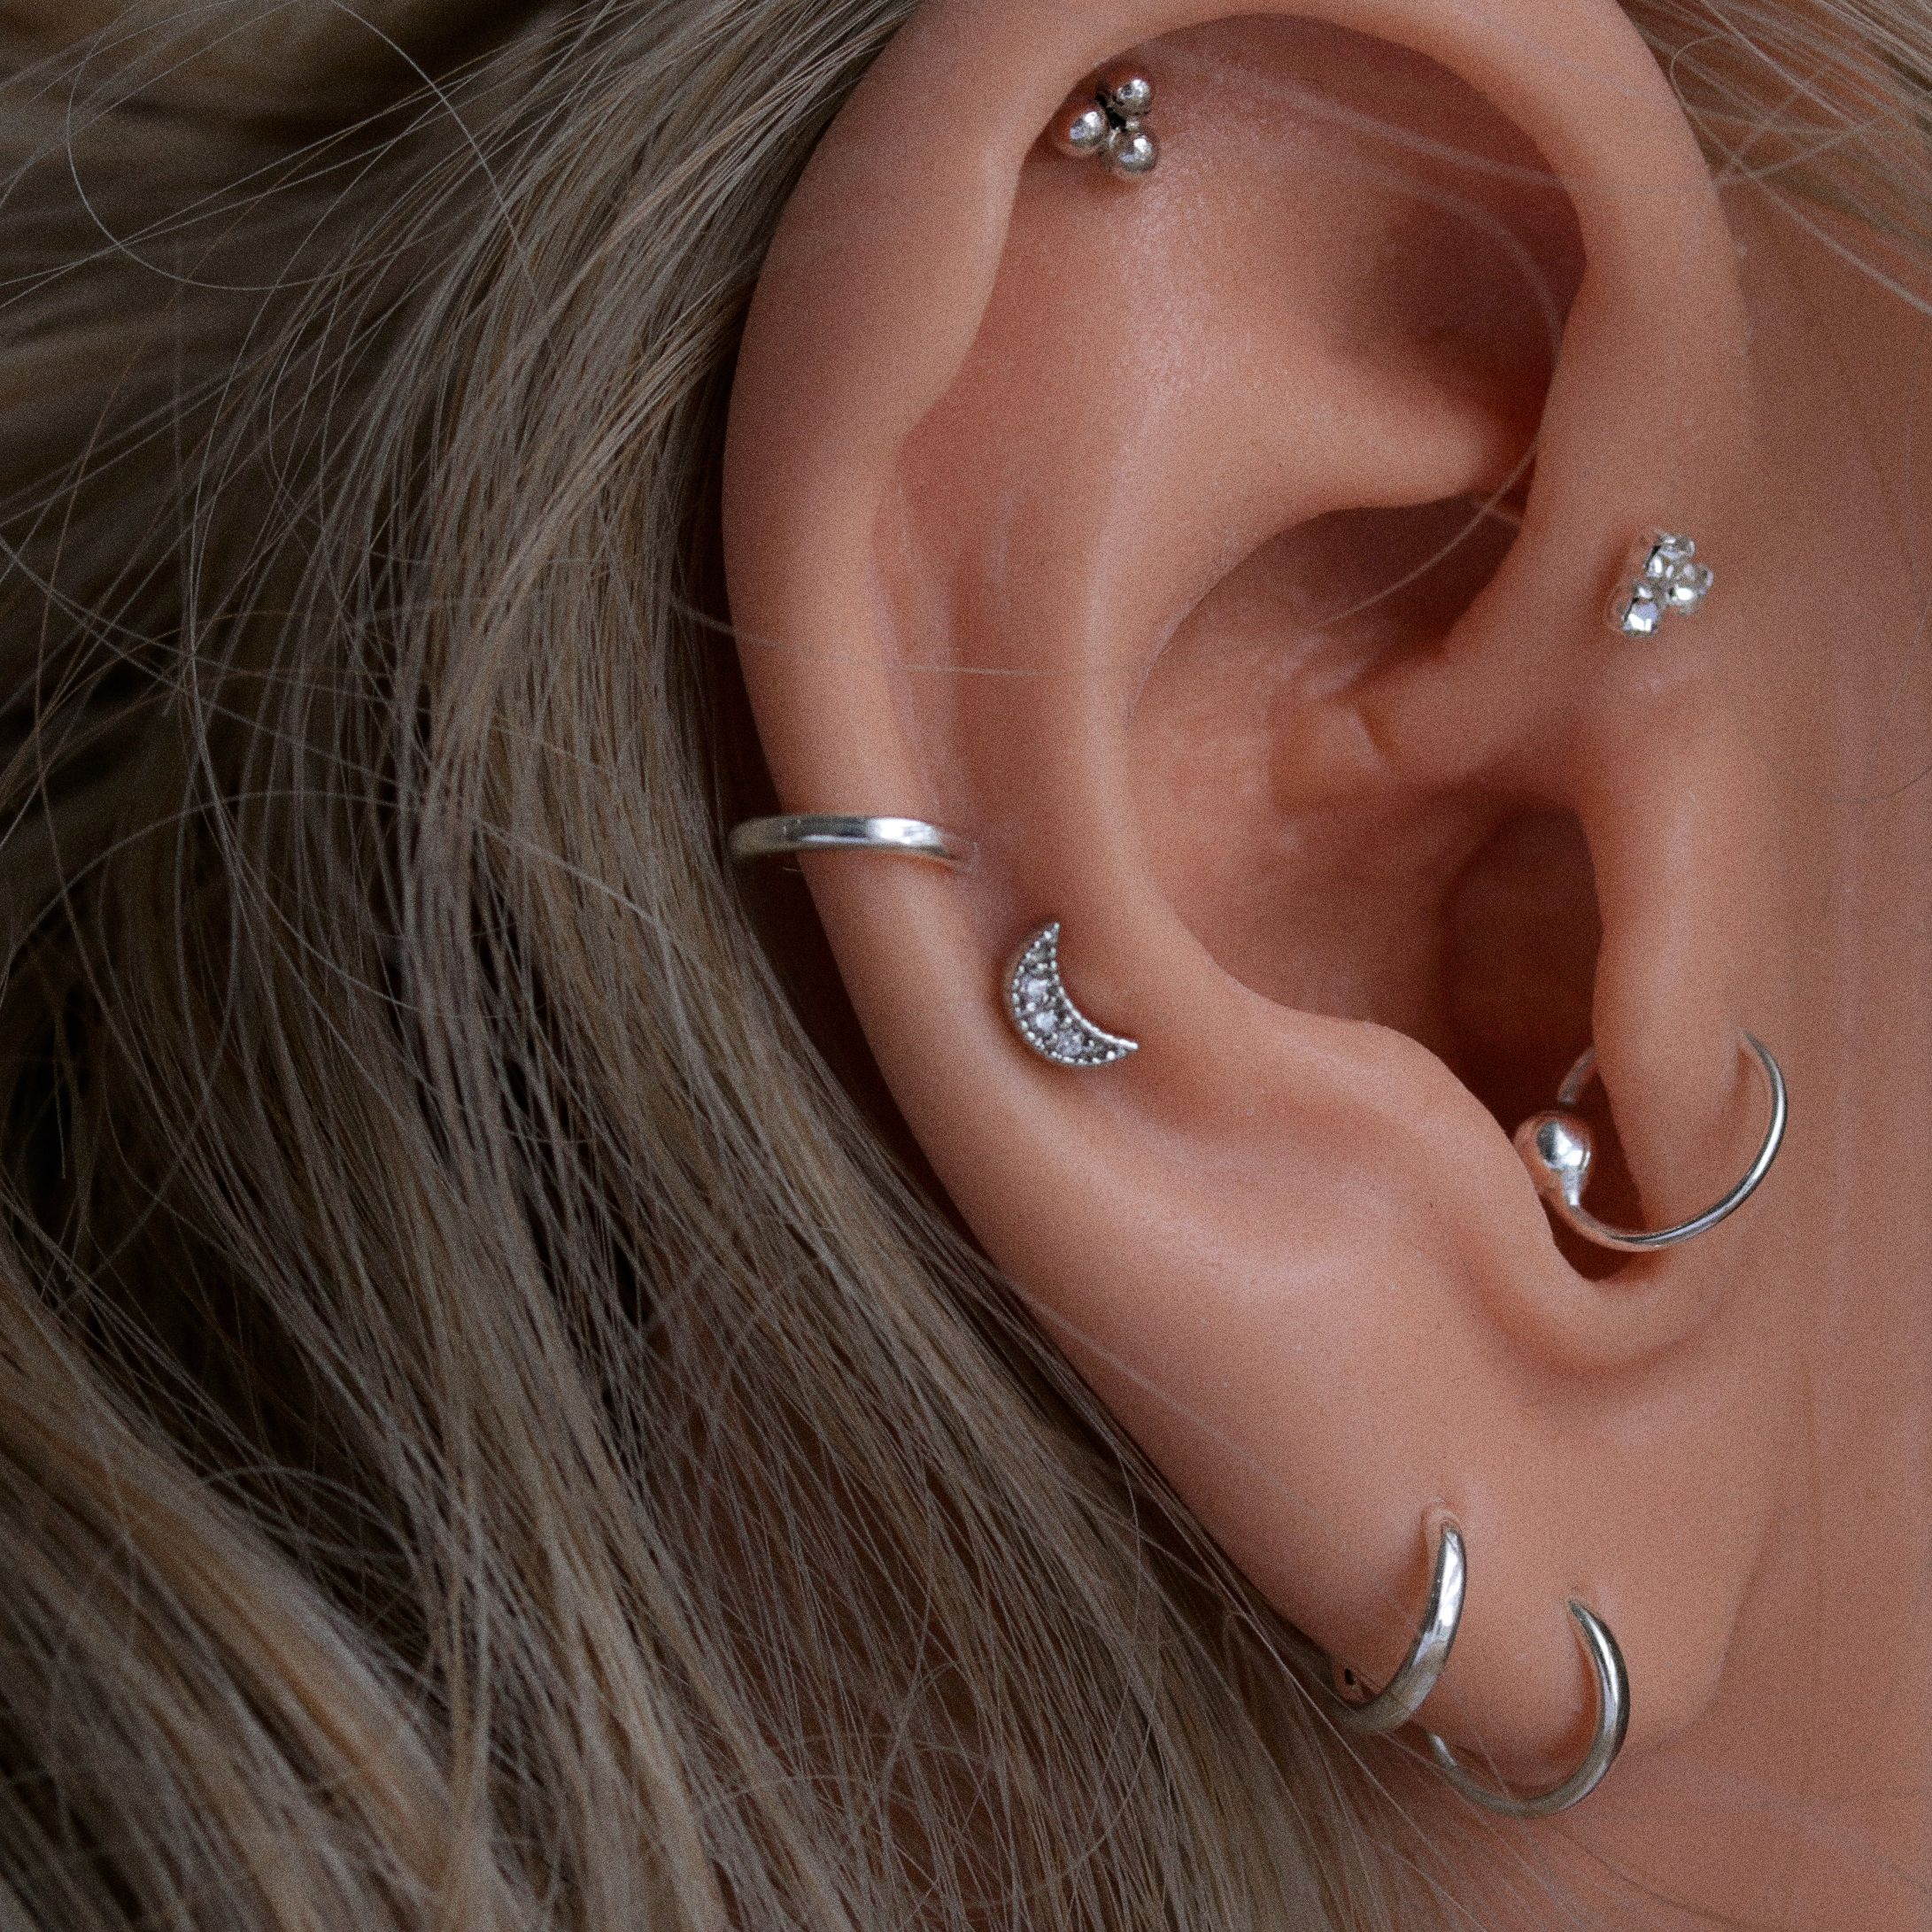 Nose piercing over 50  Ear u Adornments u In store now ladies Including brand new mini